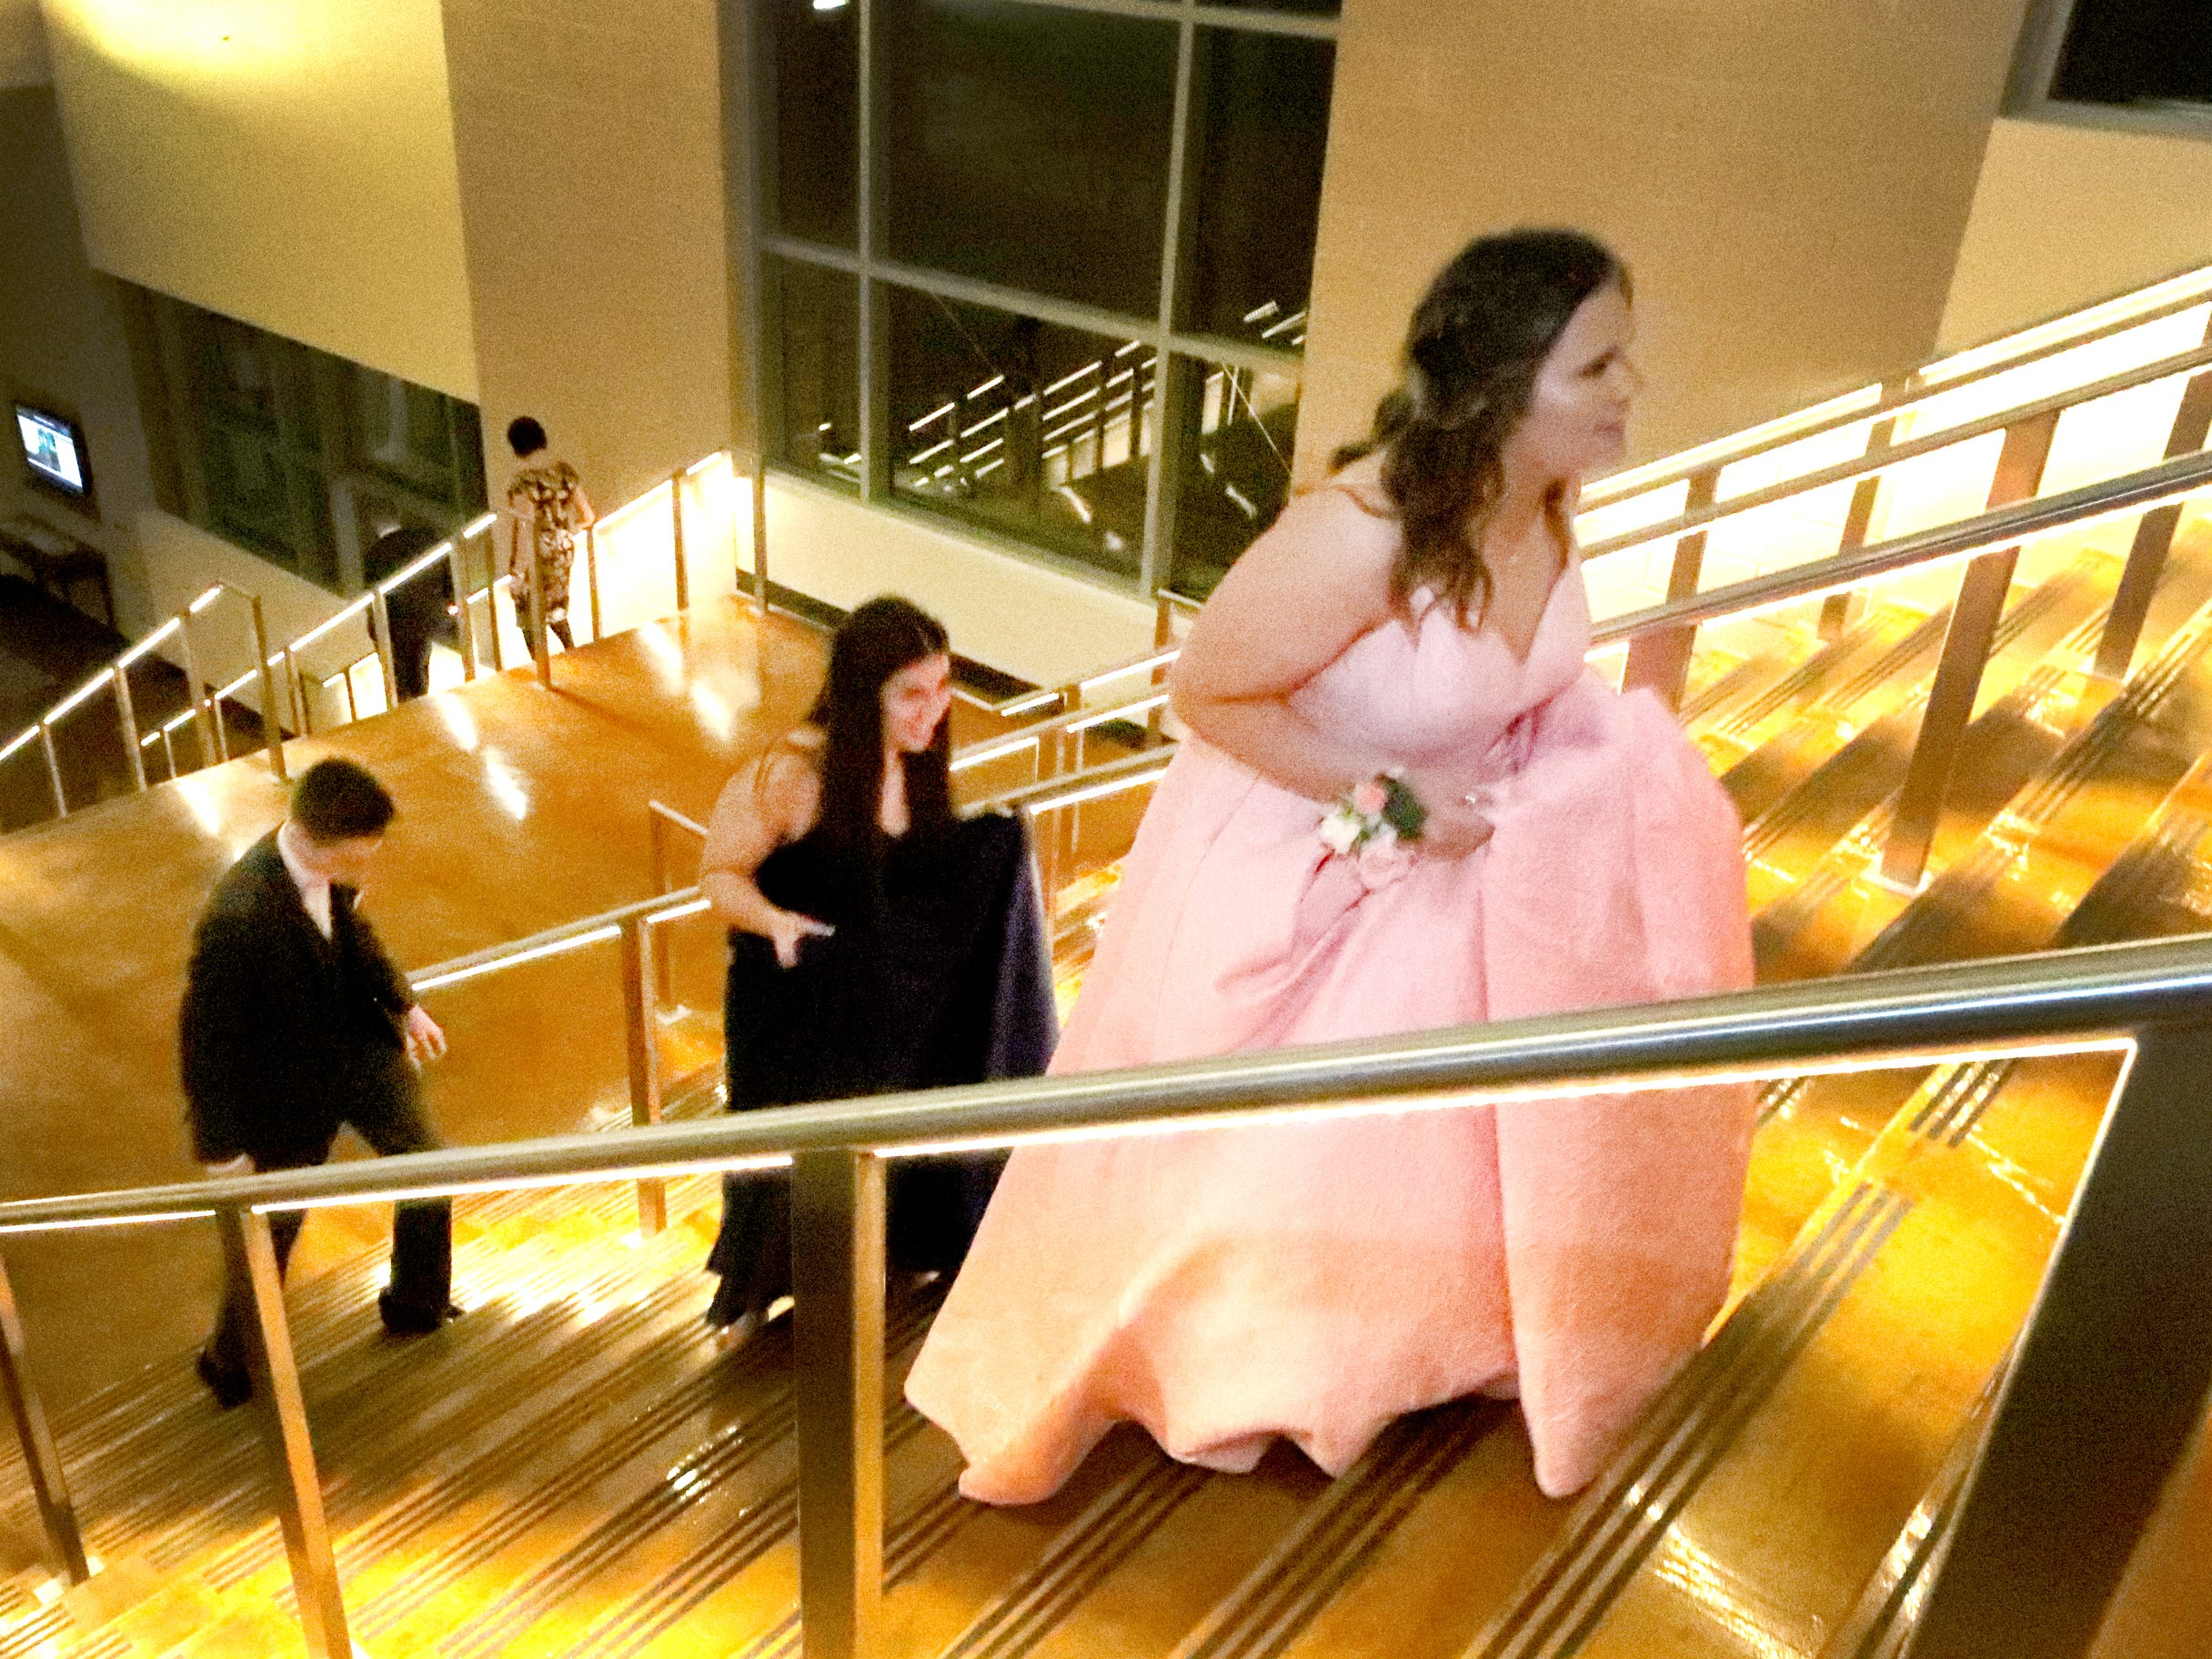 Those attending the Blackman prom ascended a large staircase to arrive at prom on Friday April 12, 2019, at MTSU.